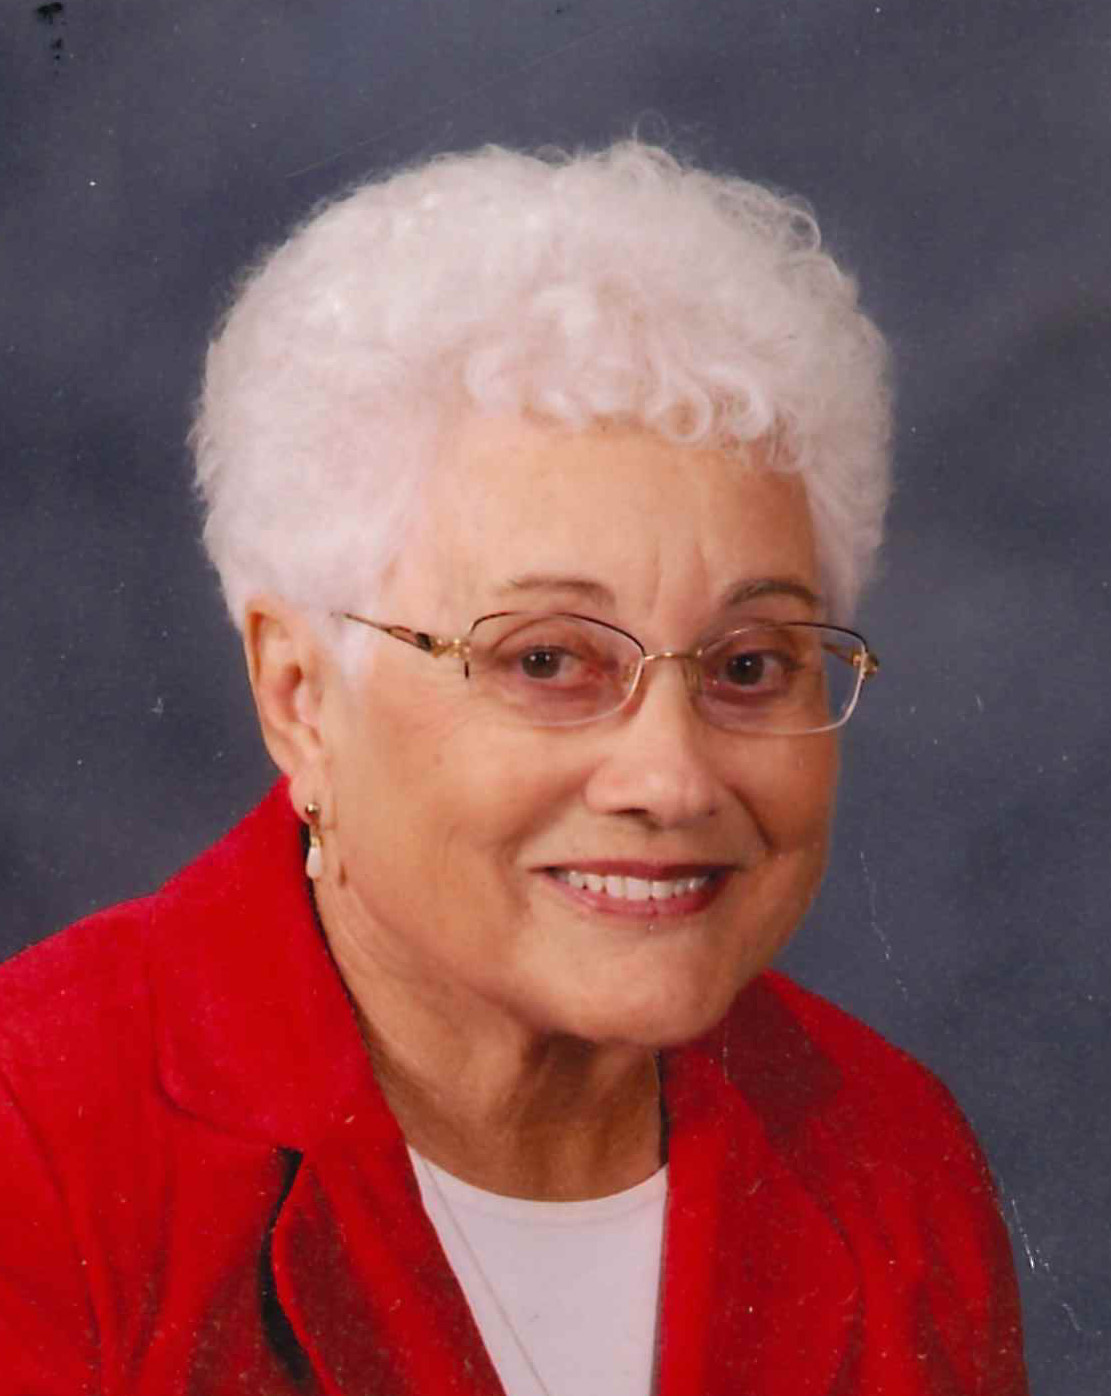 Ruth Lucille (Foster) Dutton-Louthan, 87 years of age, Kearney NE